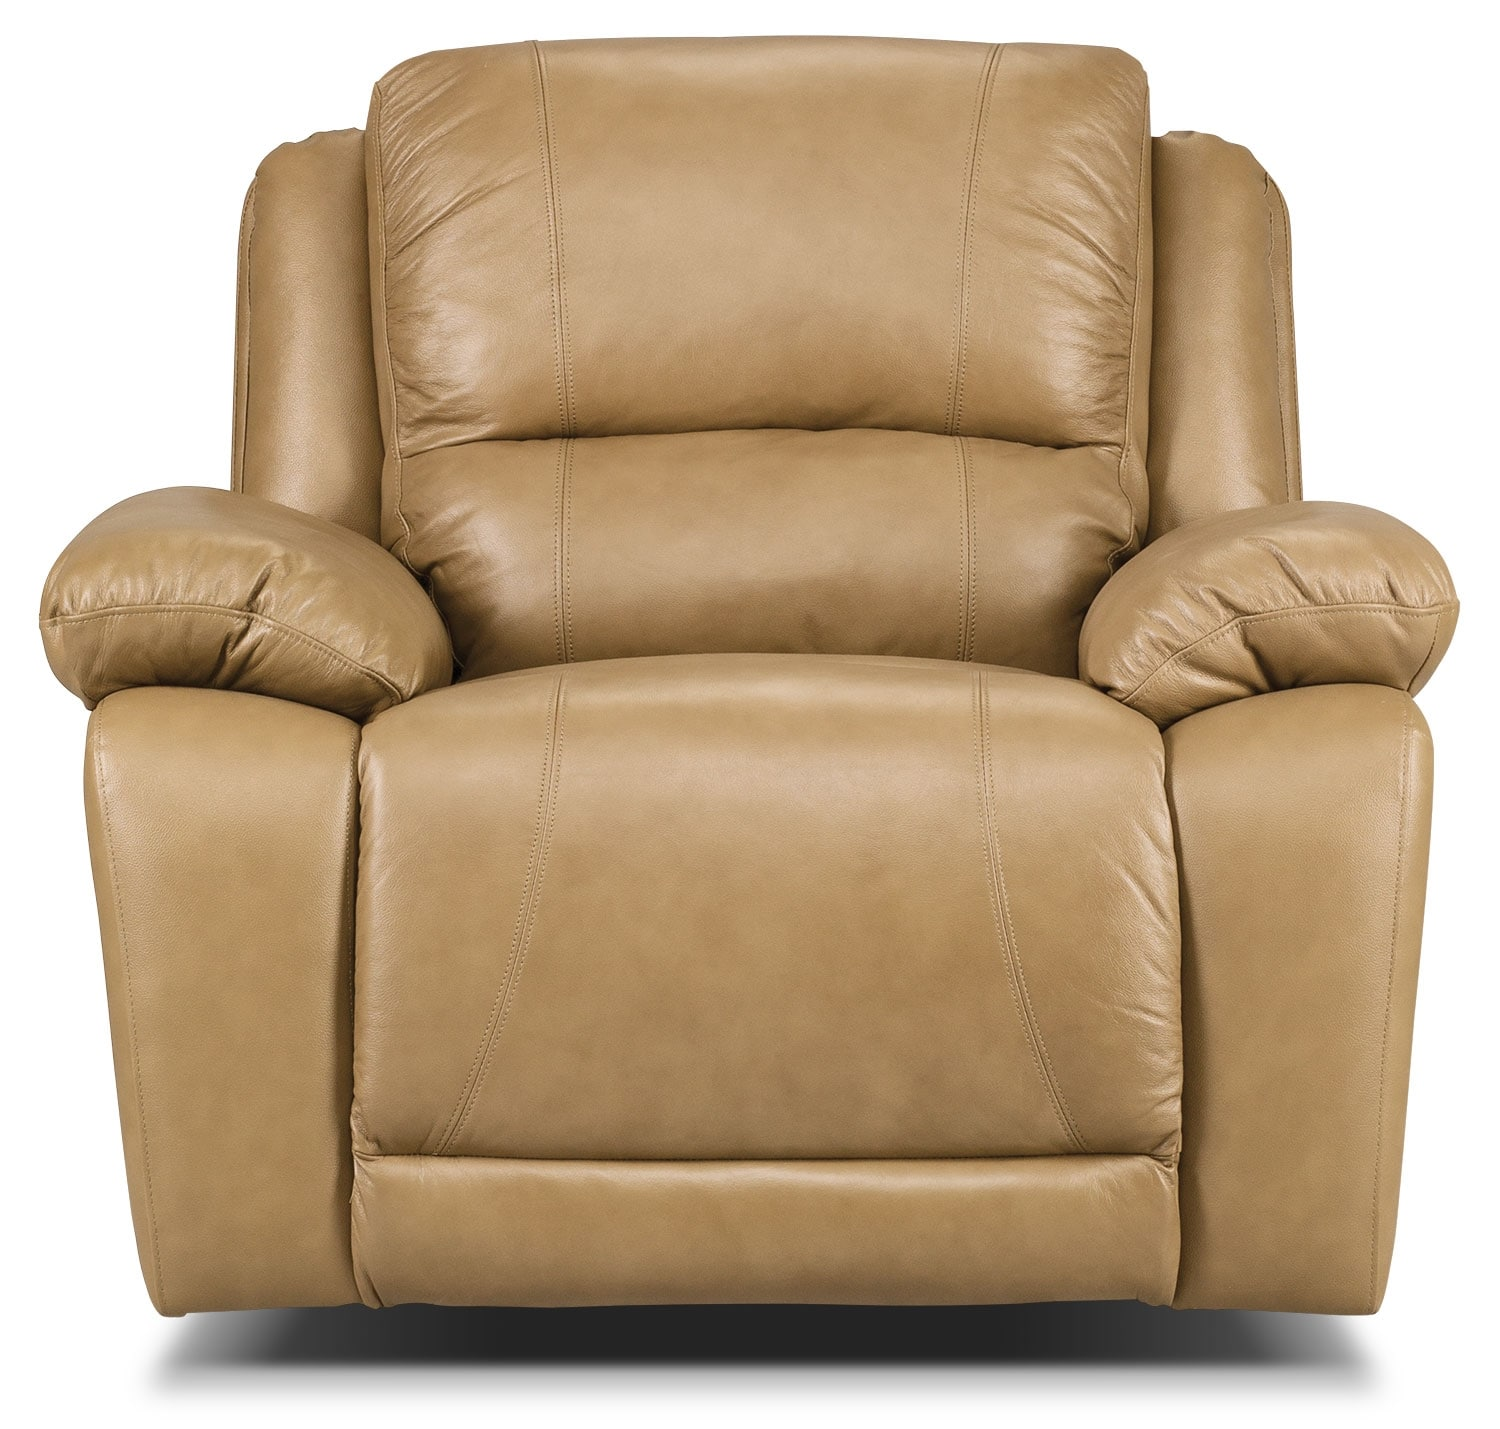 Living Room Furniture - Marco Genuine Leather Reclining Chair - Toffee